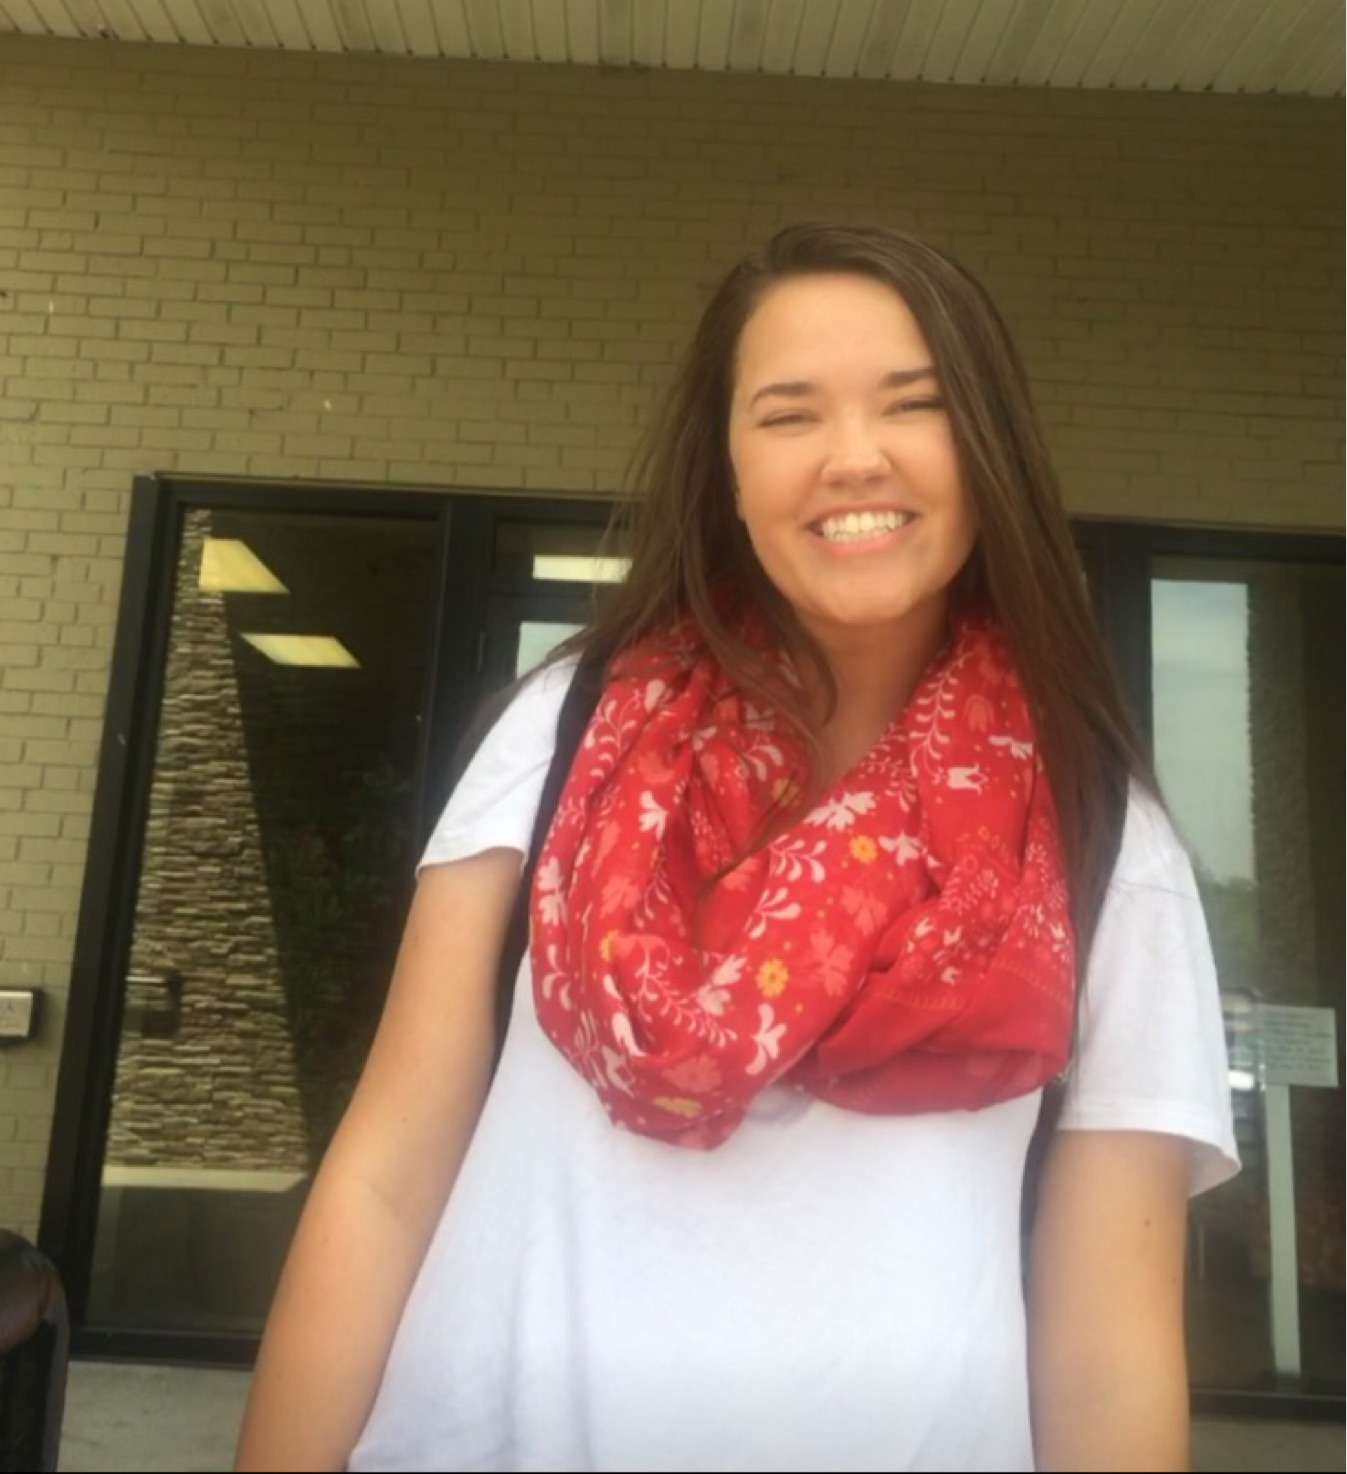 Madison smiles on last day of community college